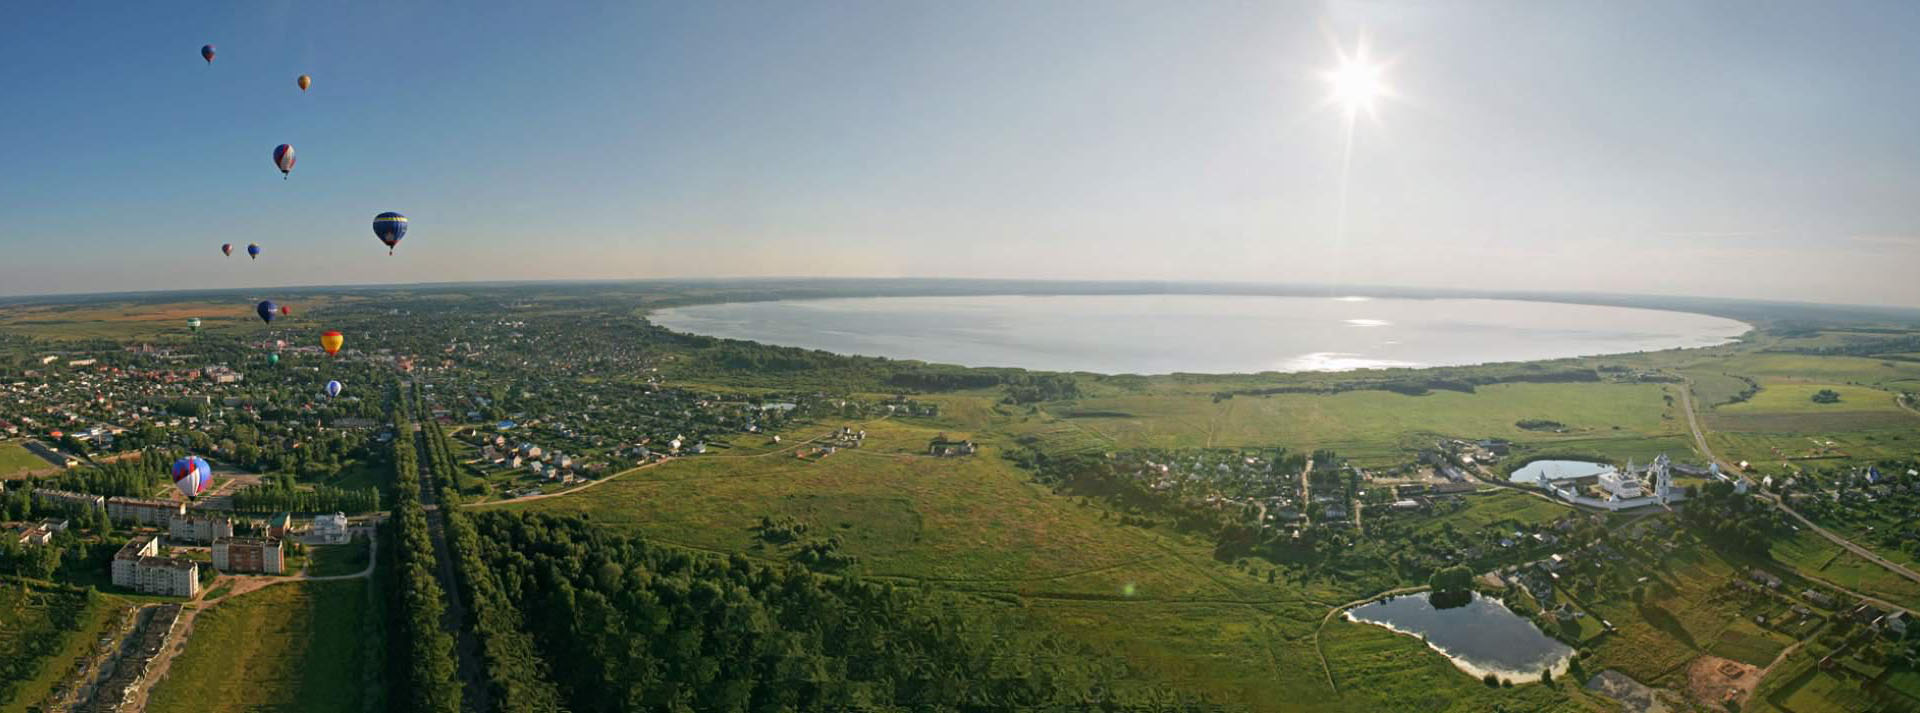 Plescheevo lake in Peterslavl.jpg